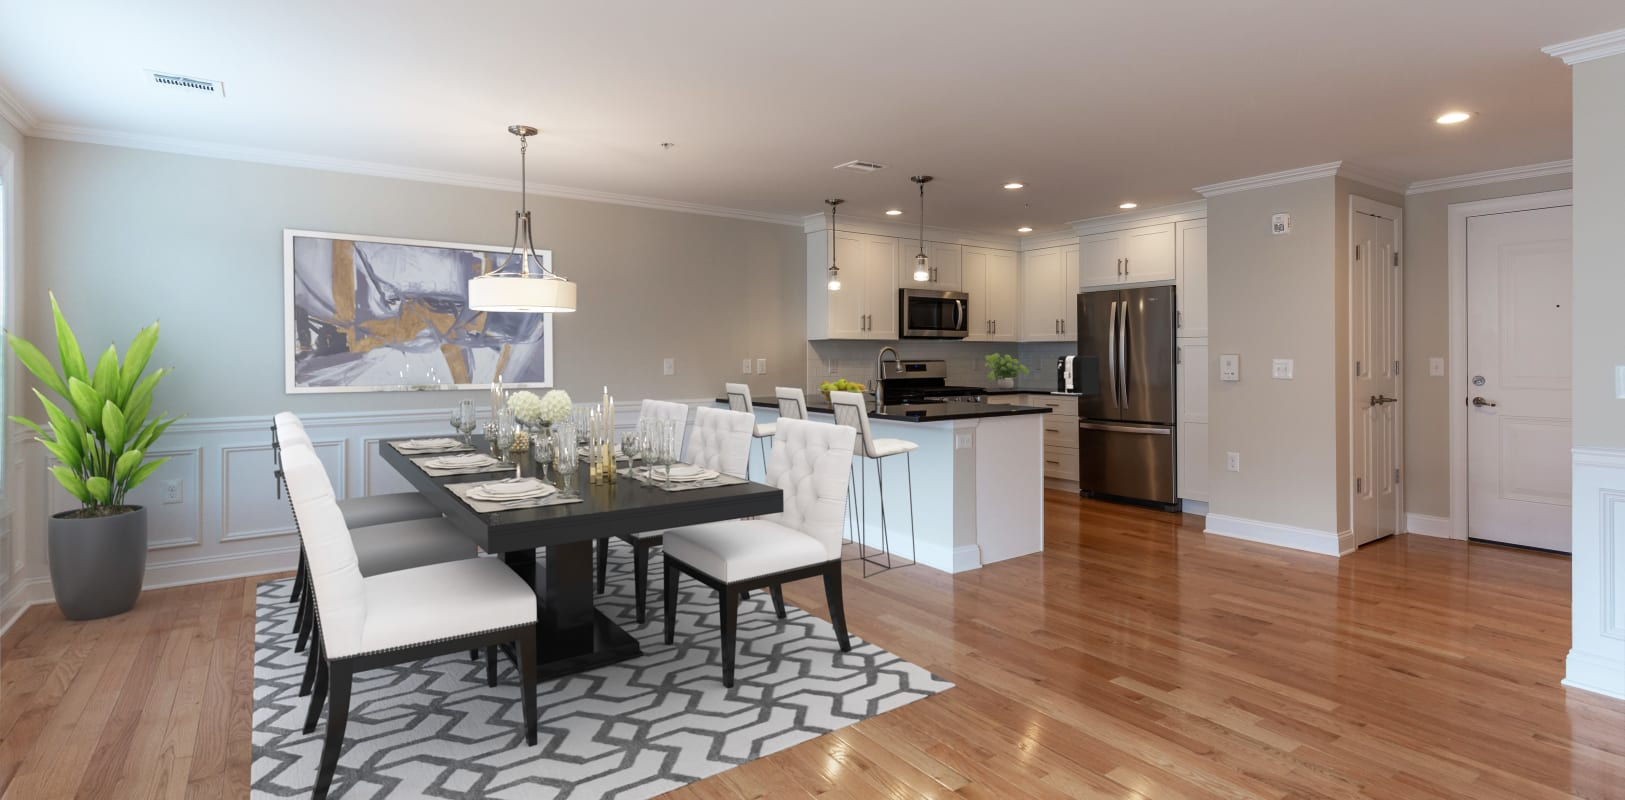 Kitchen and dining room with hardwood floors at Zephyr Ridge in Cedar Grove, New Jersey